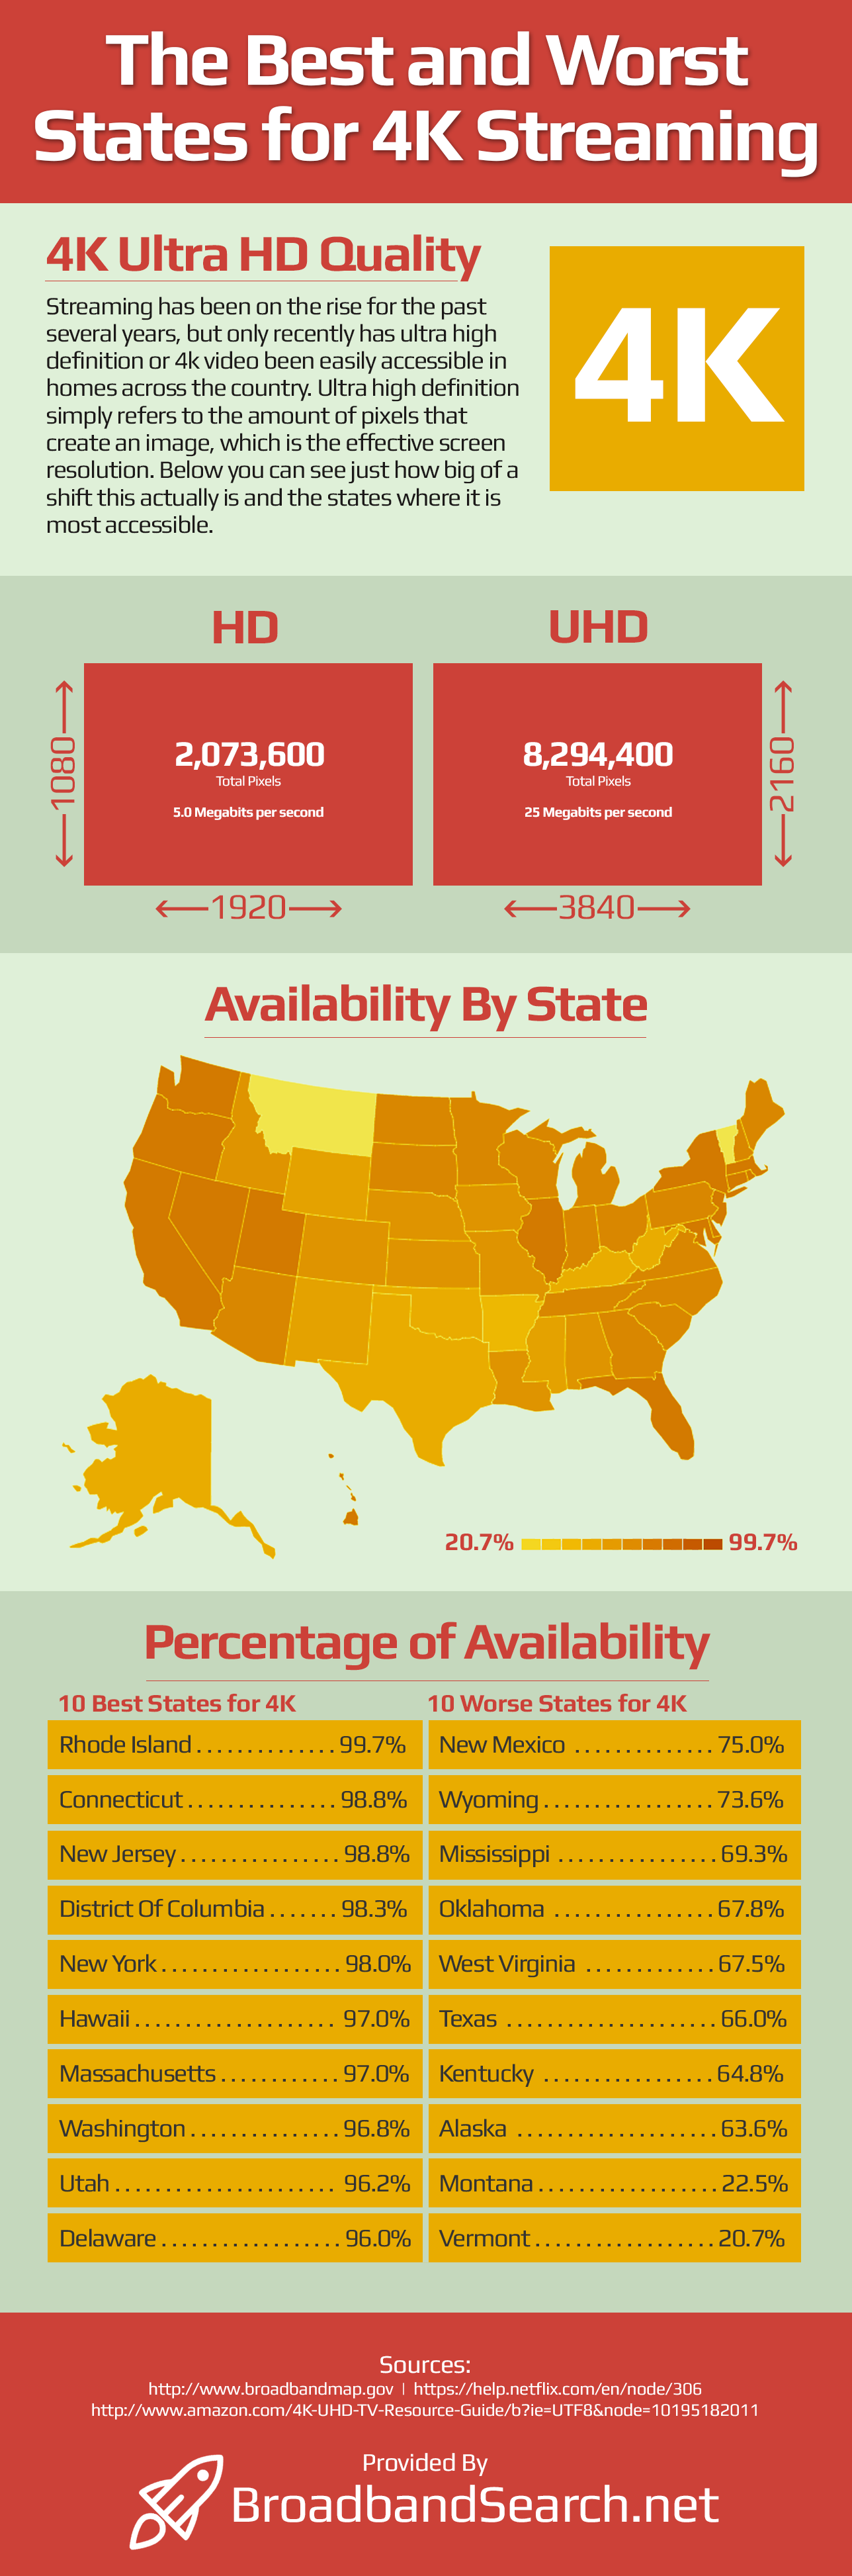 The best and worst states for 4k streaming infographic